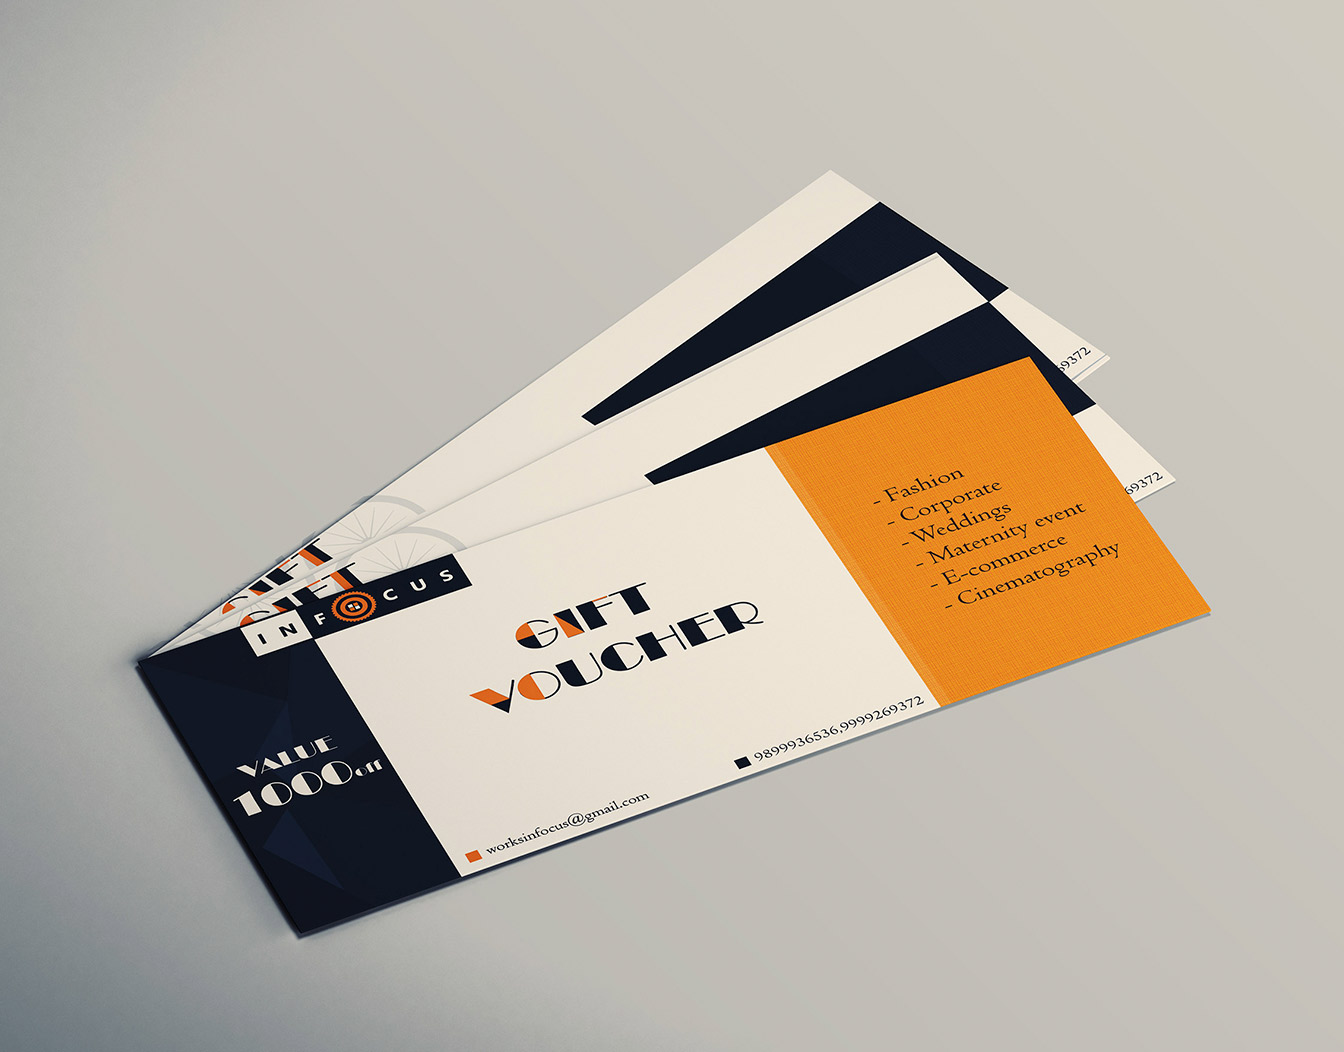 Sample of gift cards